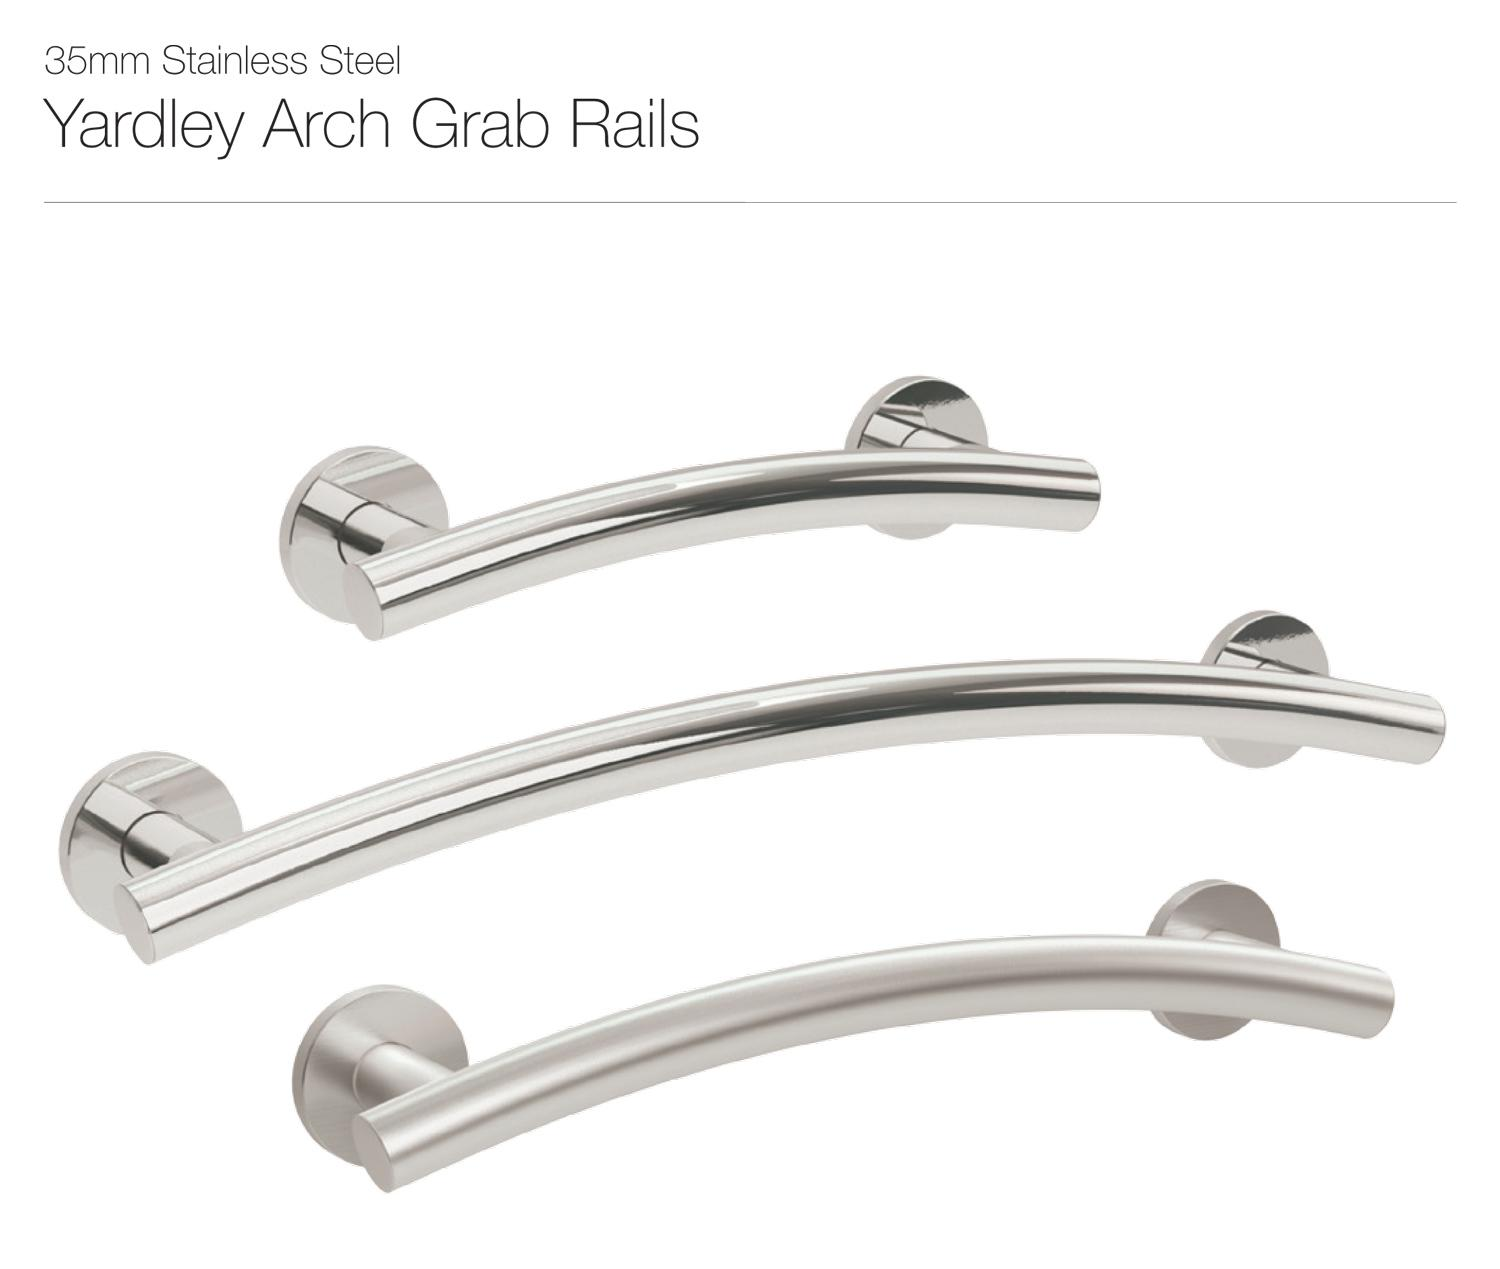 Yardley Arch Grab Rail (25mm Stainless Steel)